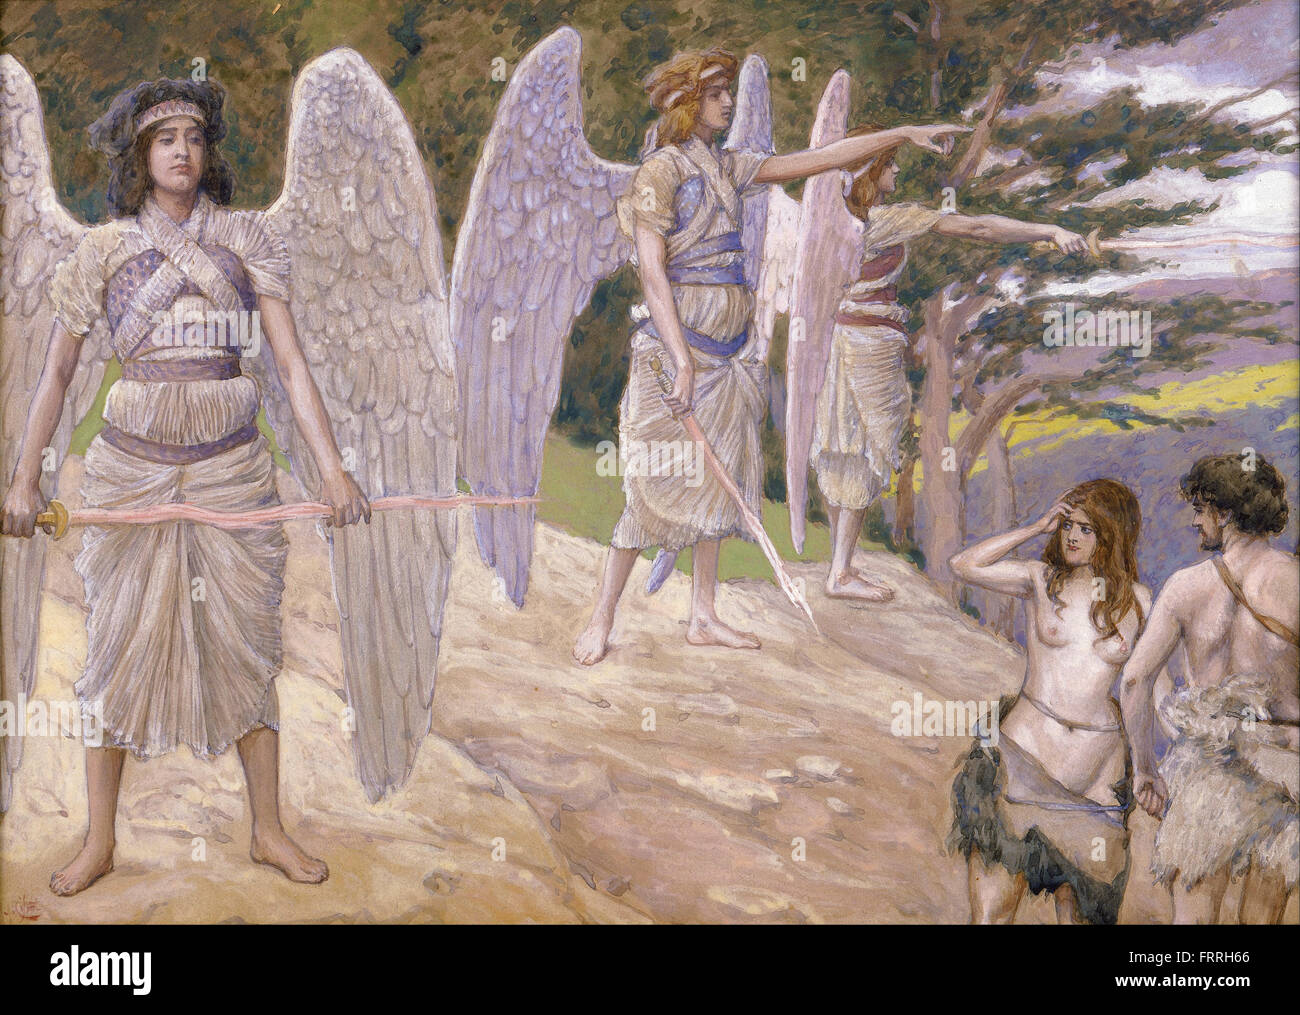 James Jacques Joseph Tissot - Adam and Eve Driven From Paradise - Stock Image